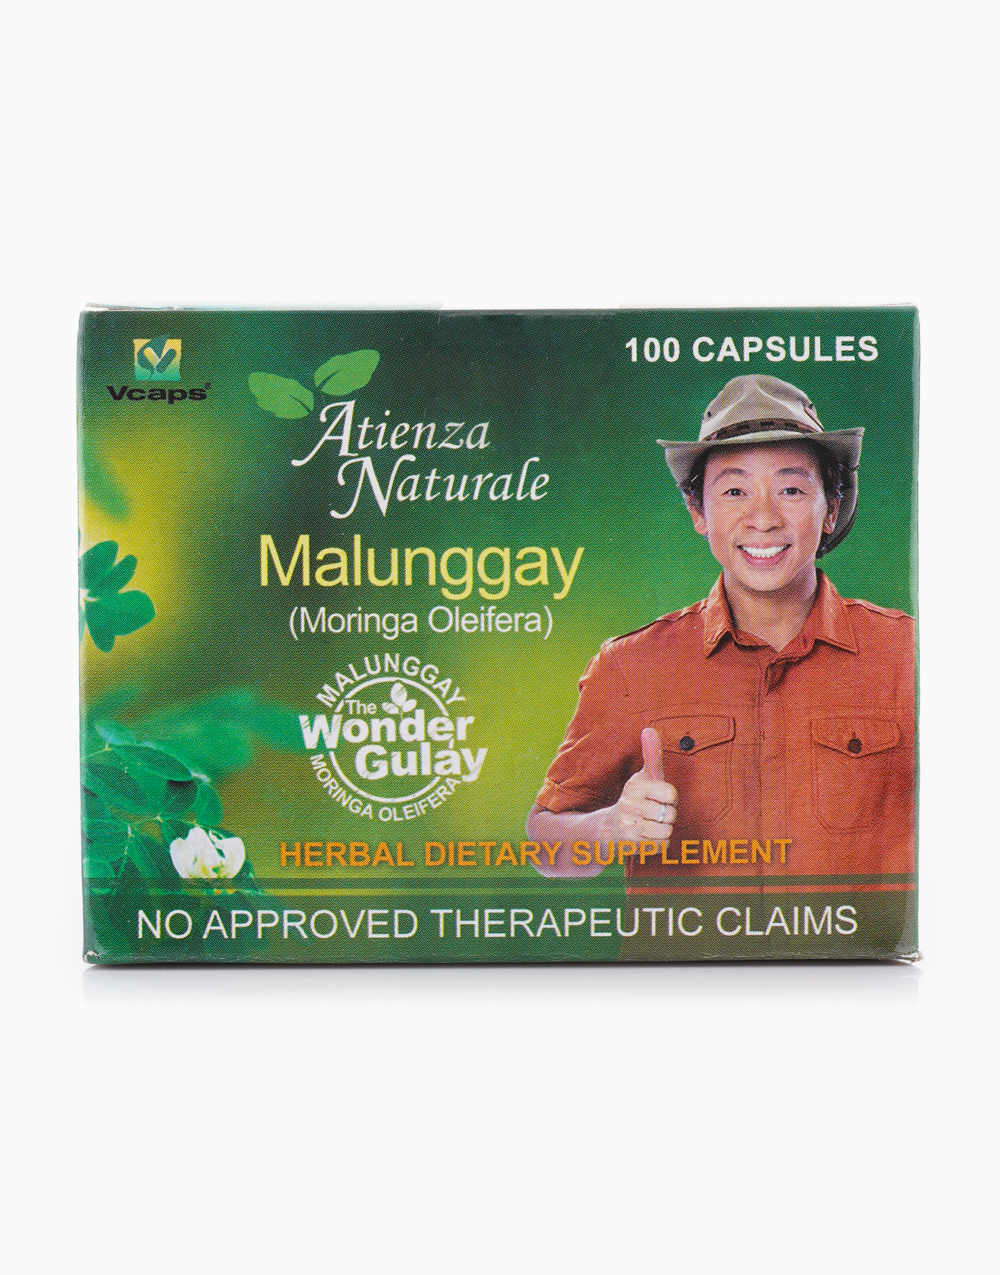 Malunggay Capsule (100s, 500mg) by Atienza Naturale